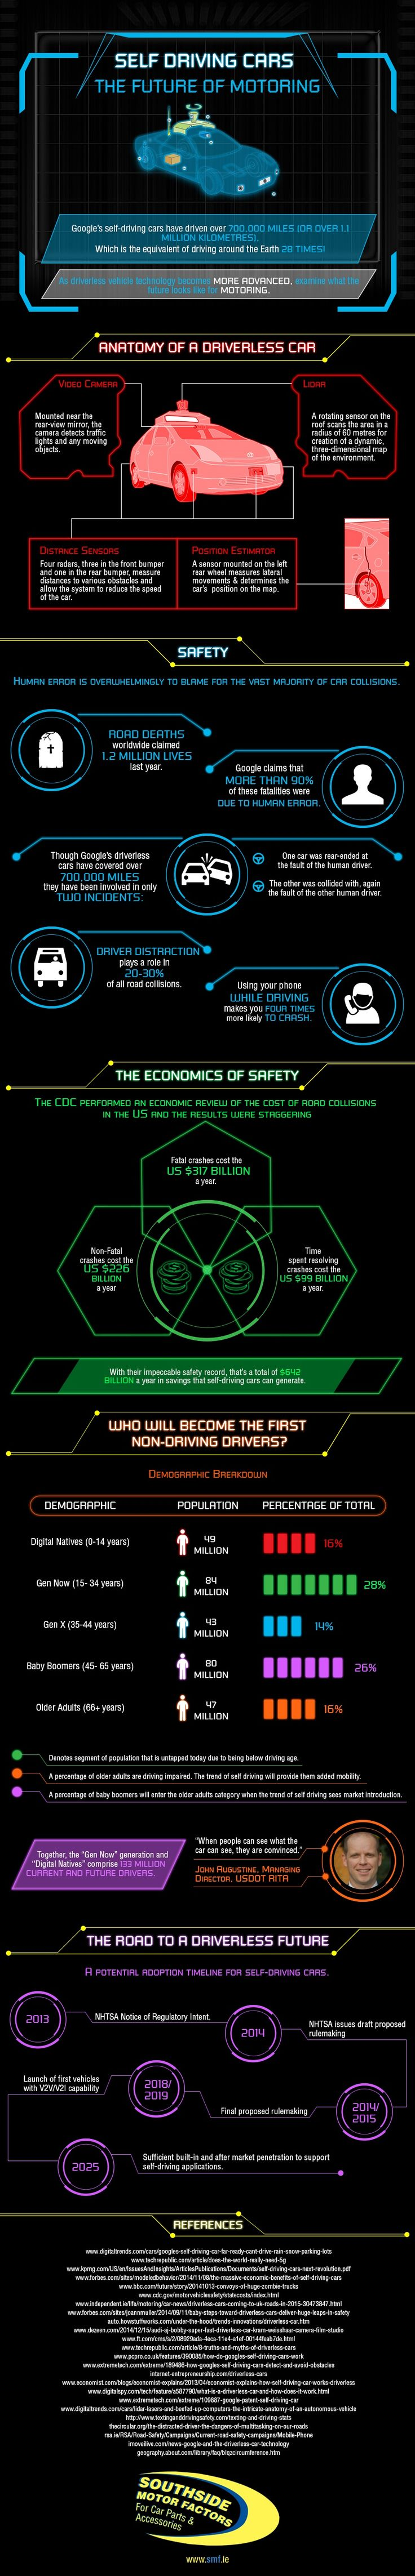 A lot of people are claiming self driving cars to be a safer option. This infographic digs into the anatomy of a self driving car.